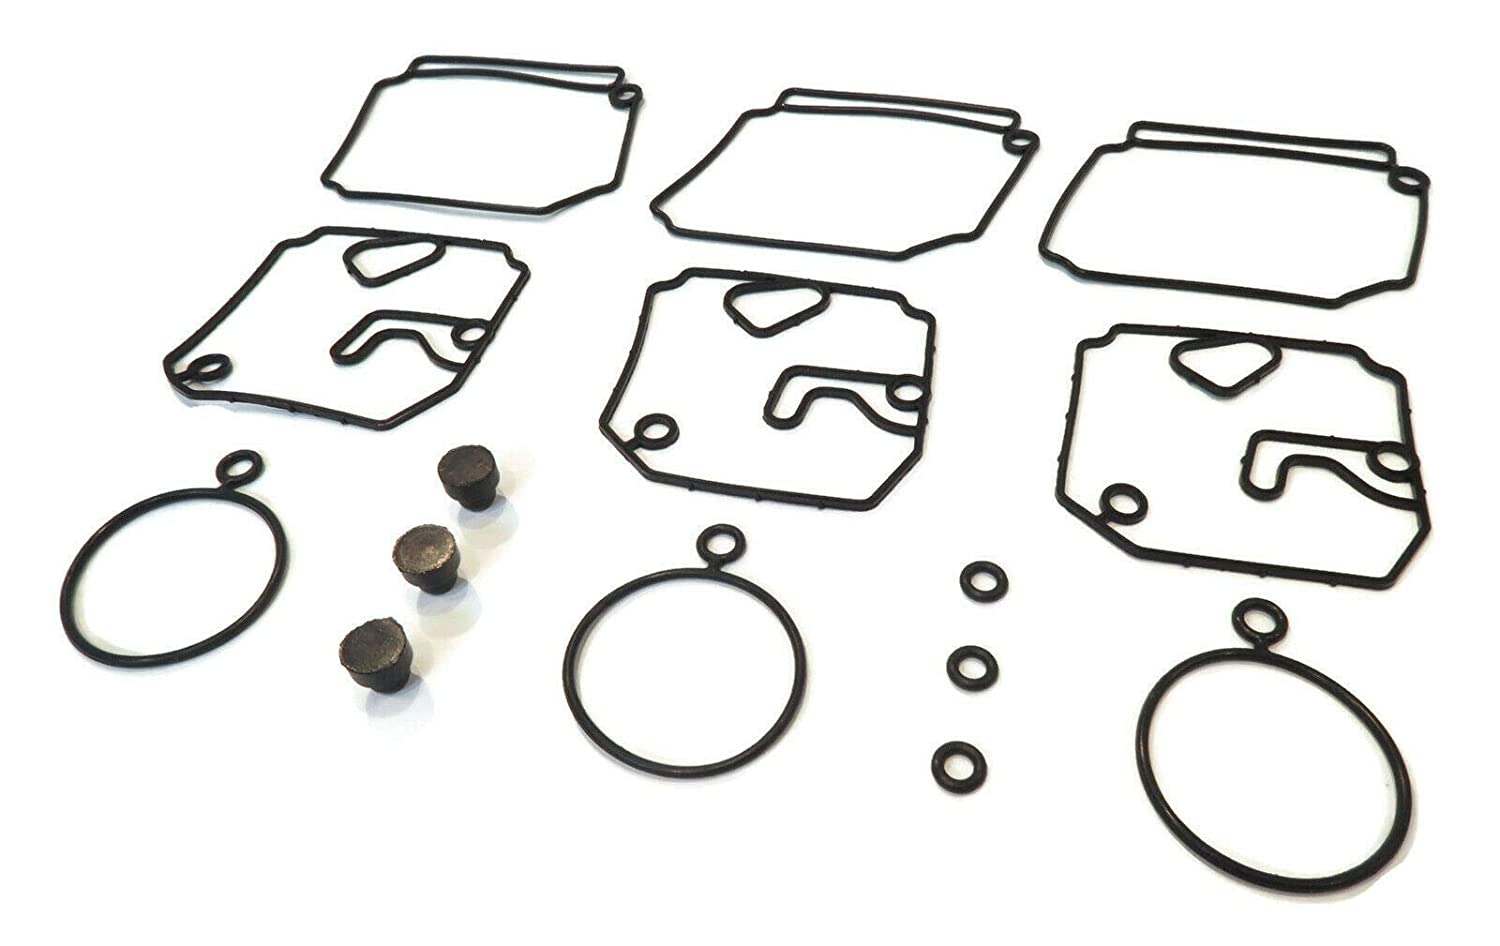 The ROP Shop Carburetor Repair Kit for Yamaha 40HP Outboard 40TLRB 40MLHP 40TLRS 40MSHR